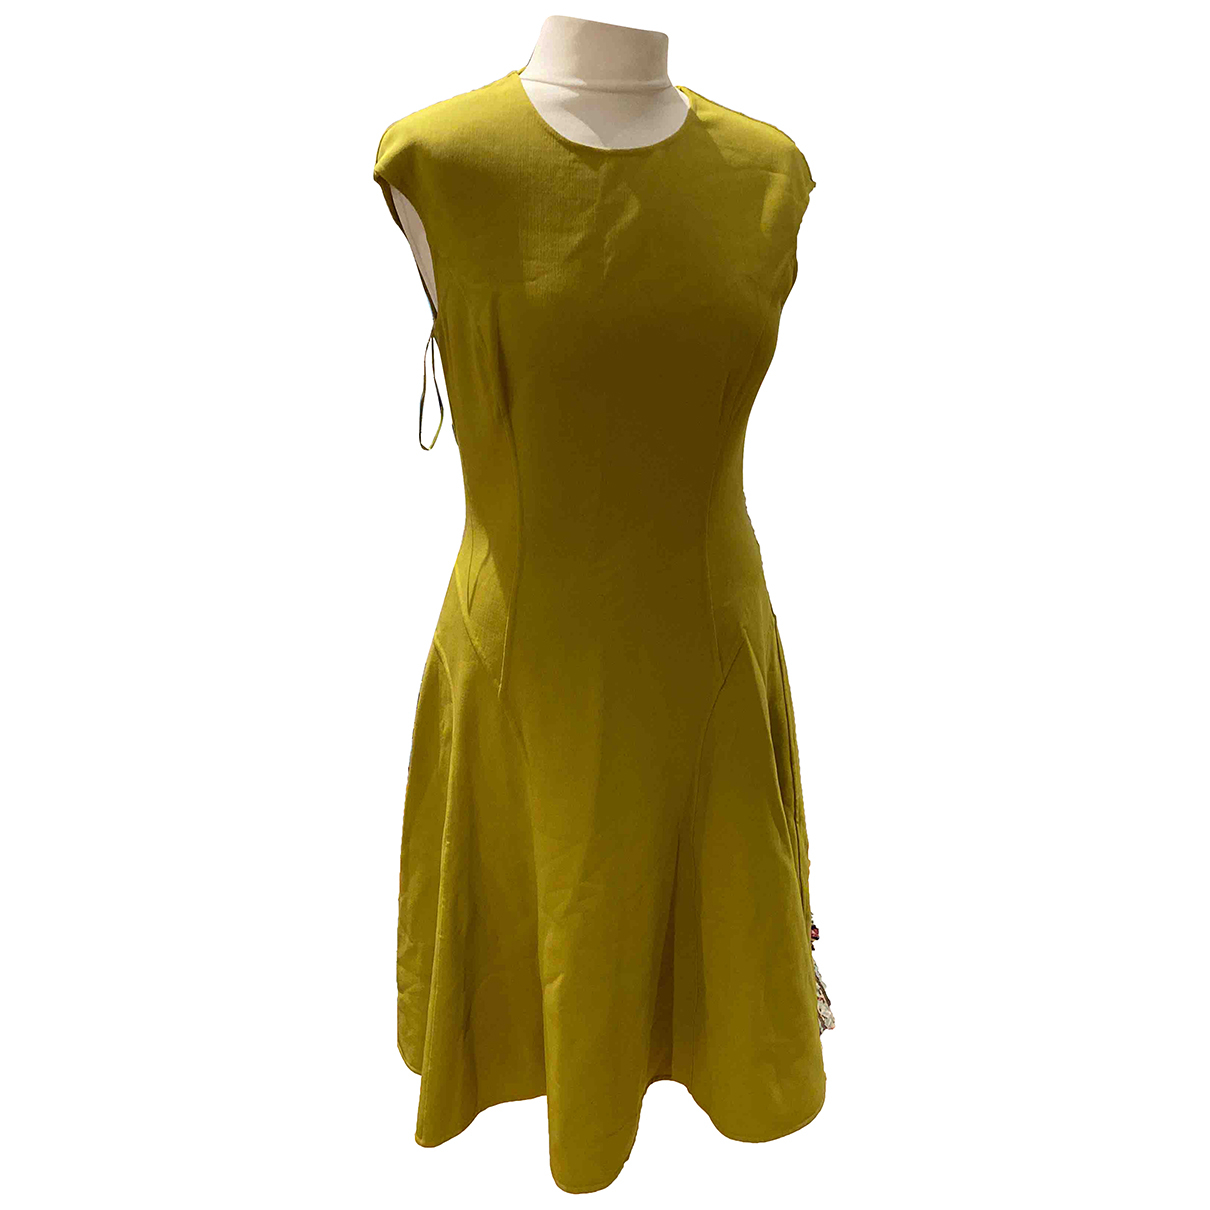 Michael Kors N Green Cotton - elasthane dress for Women 8 US